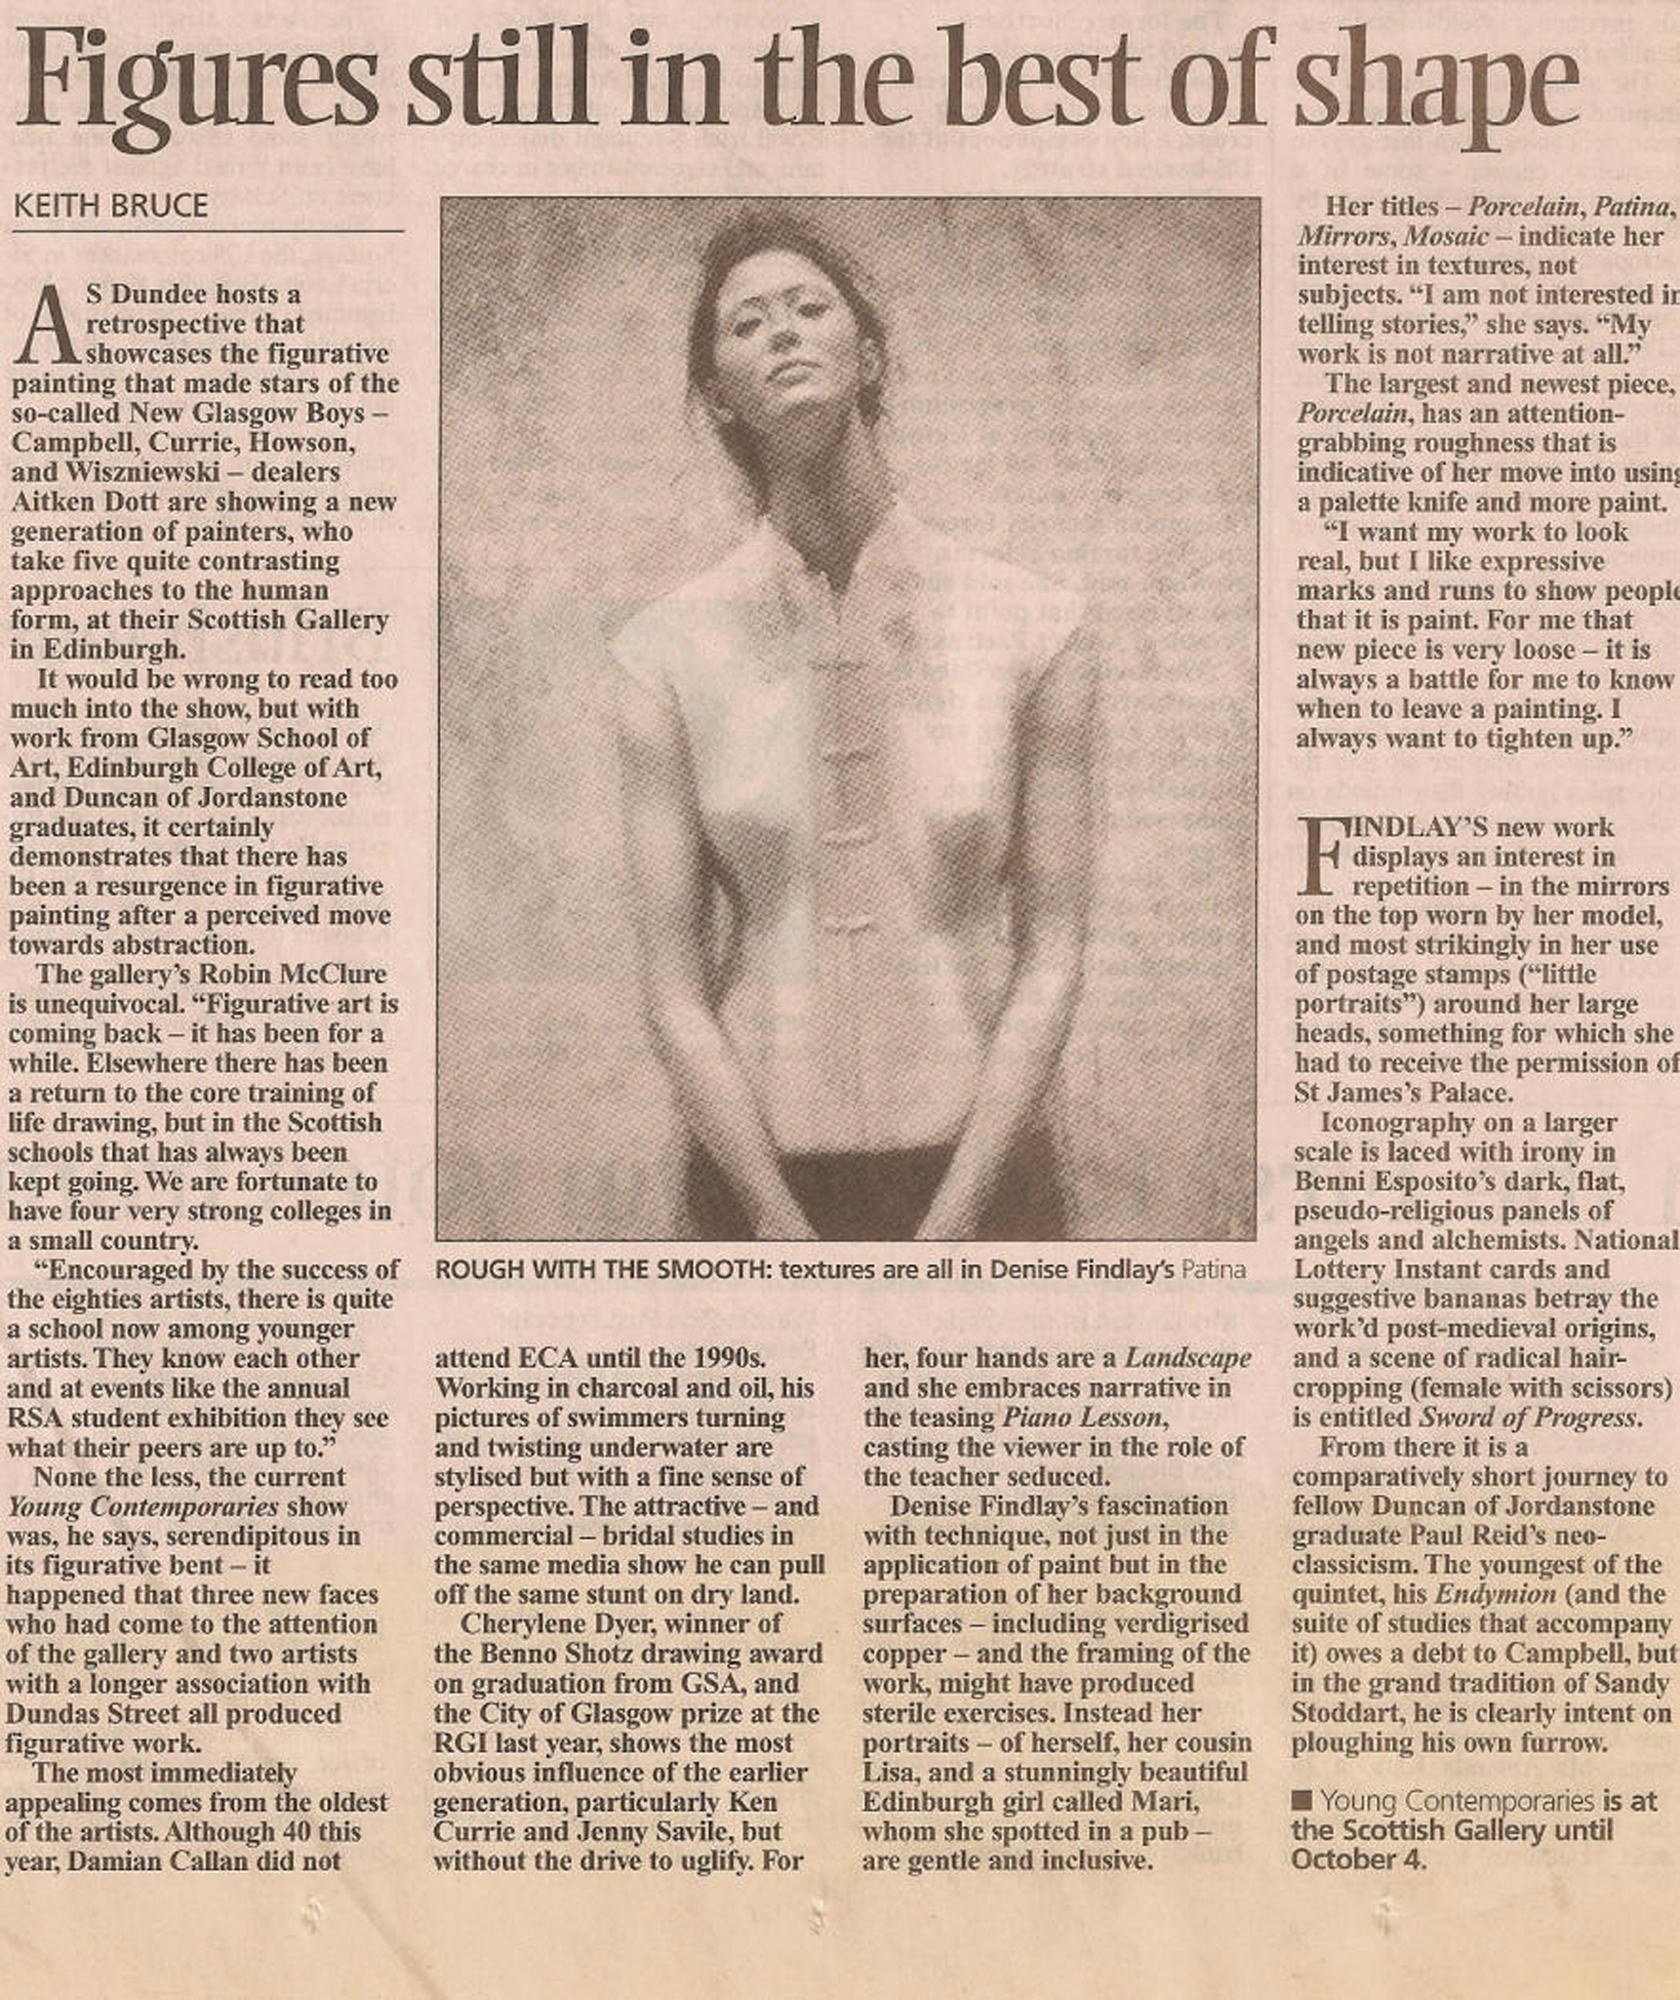 The Herald, 14th September 2000